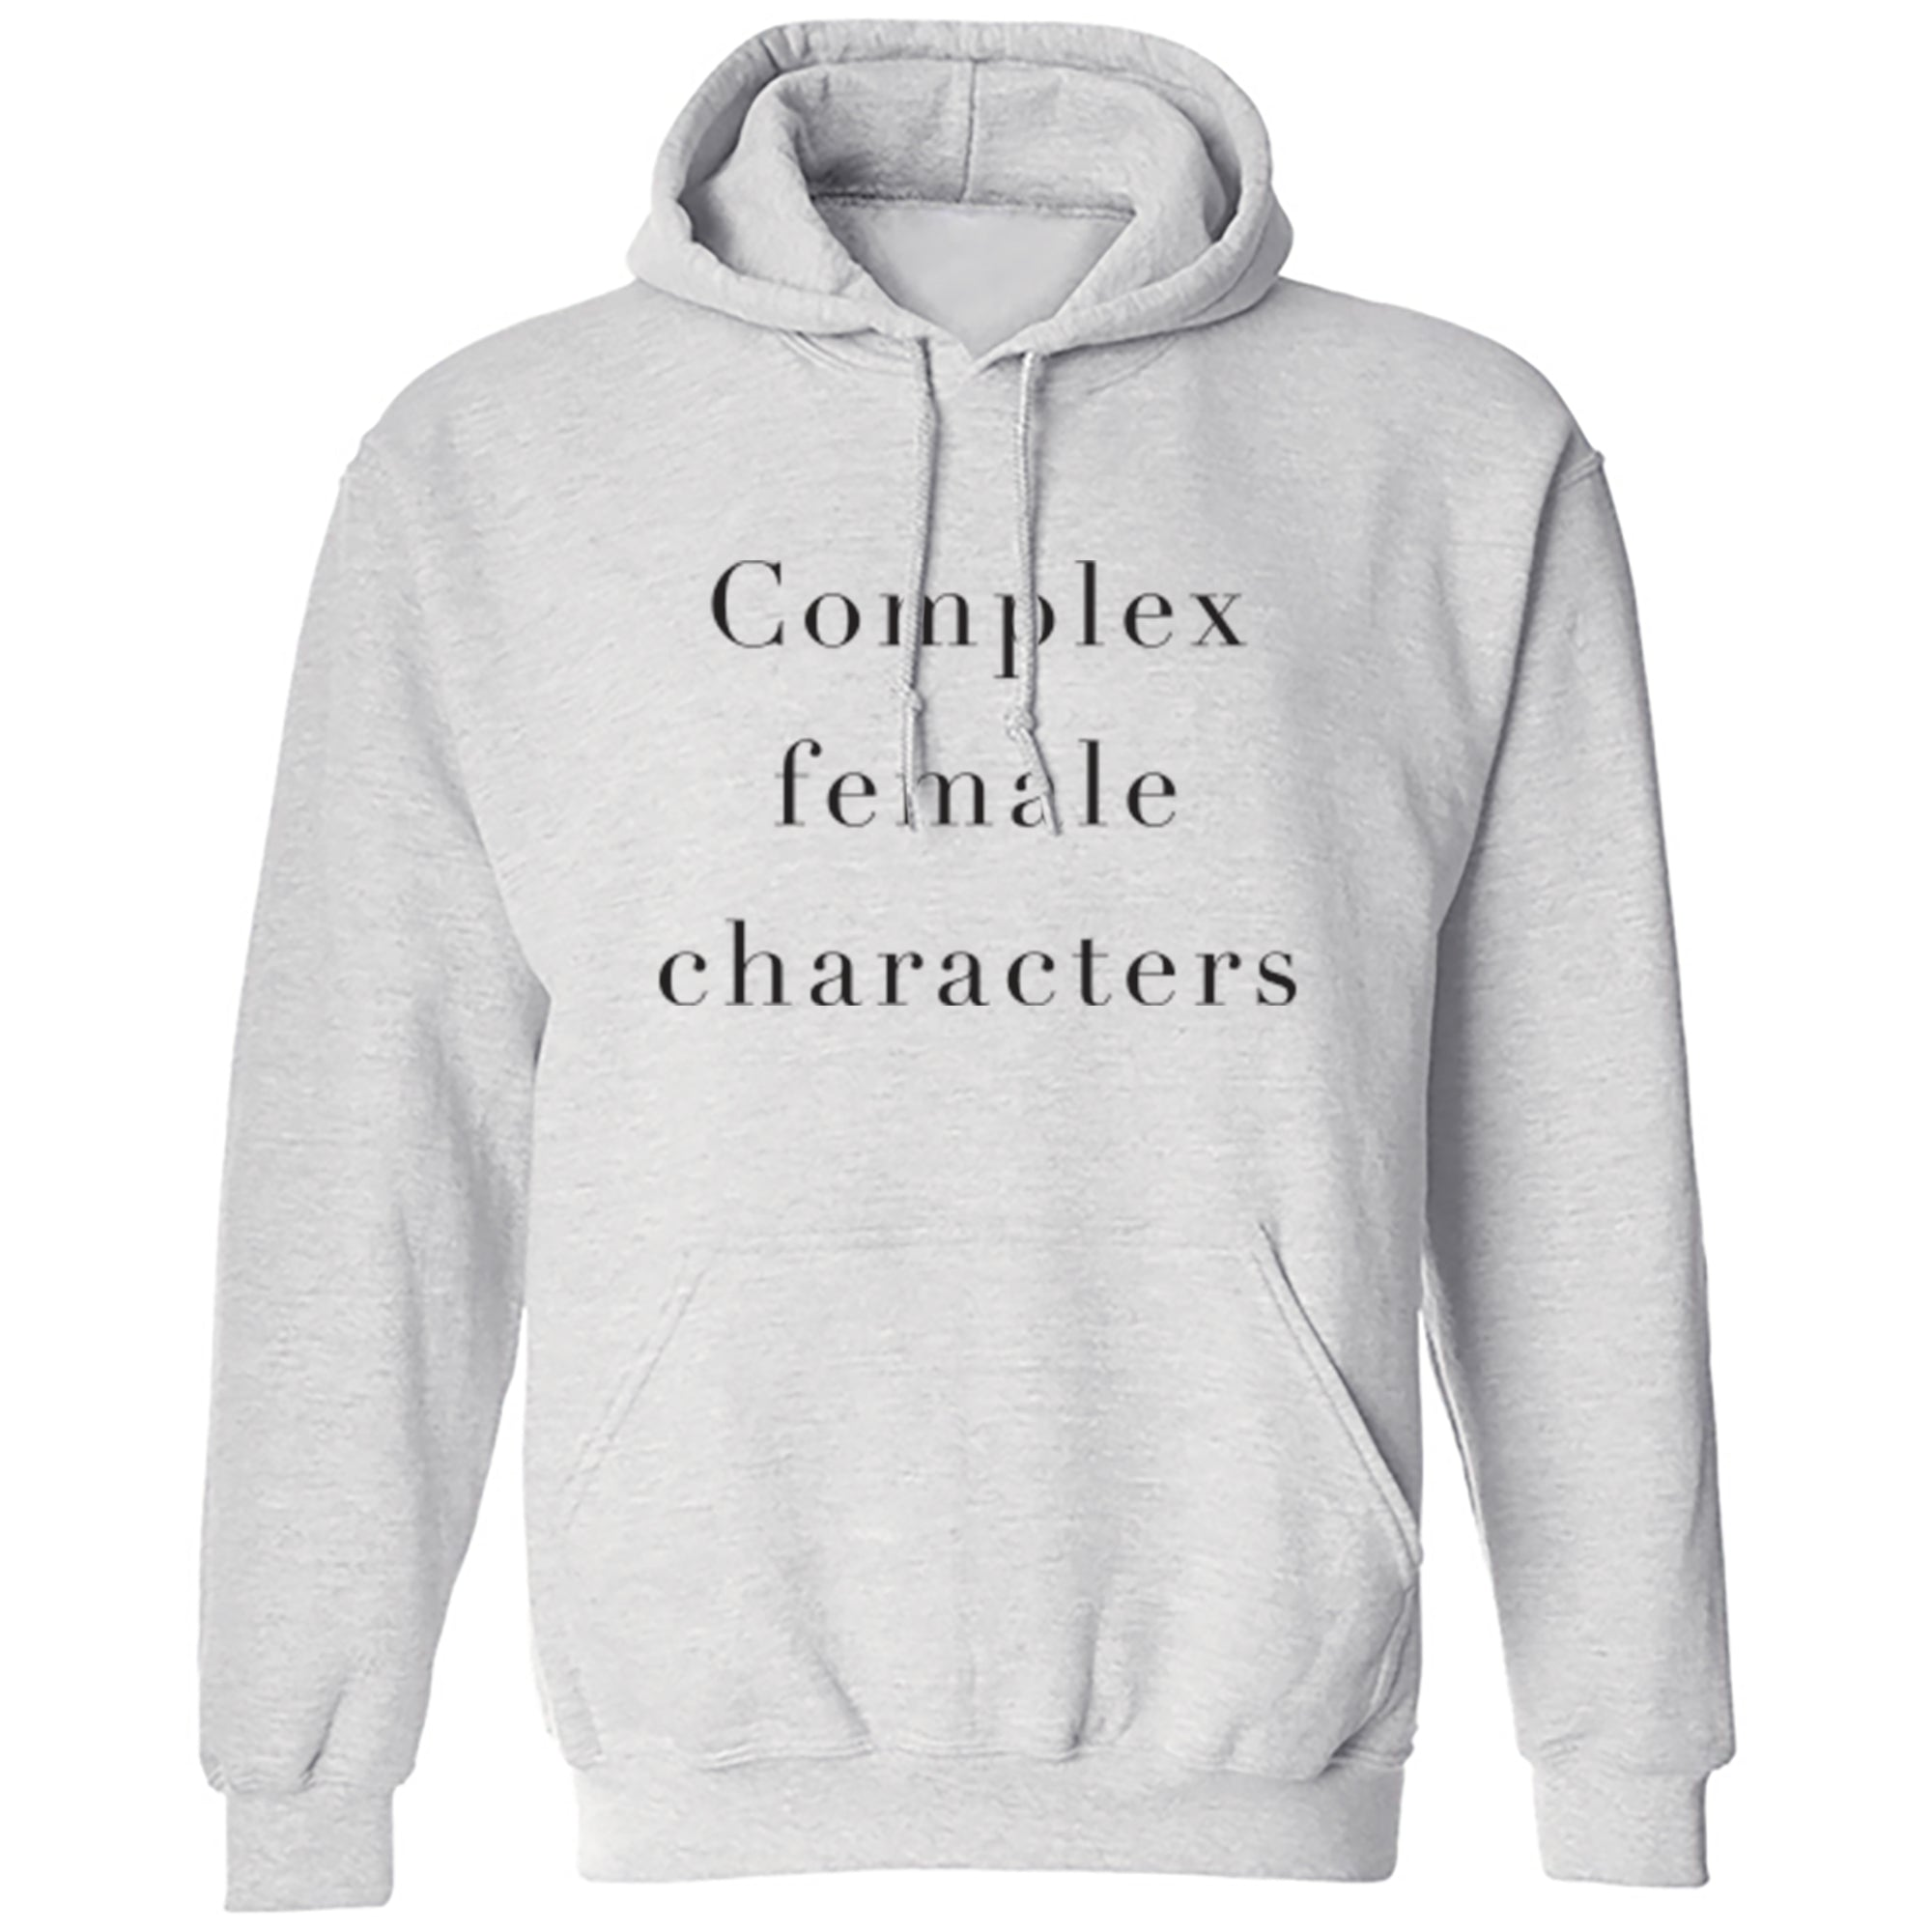 Complex Female Characters Unisex Hoodie S0615 - Illustrated Identity Ltd.